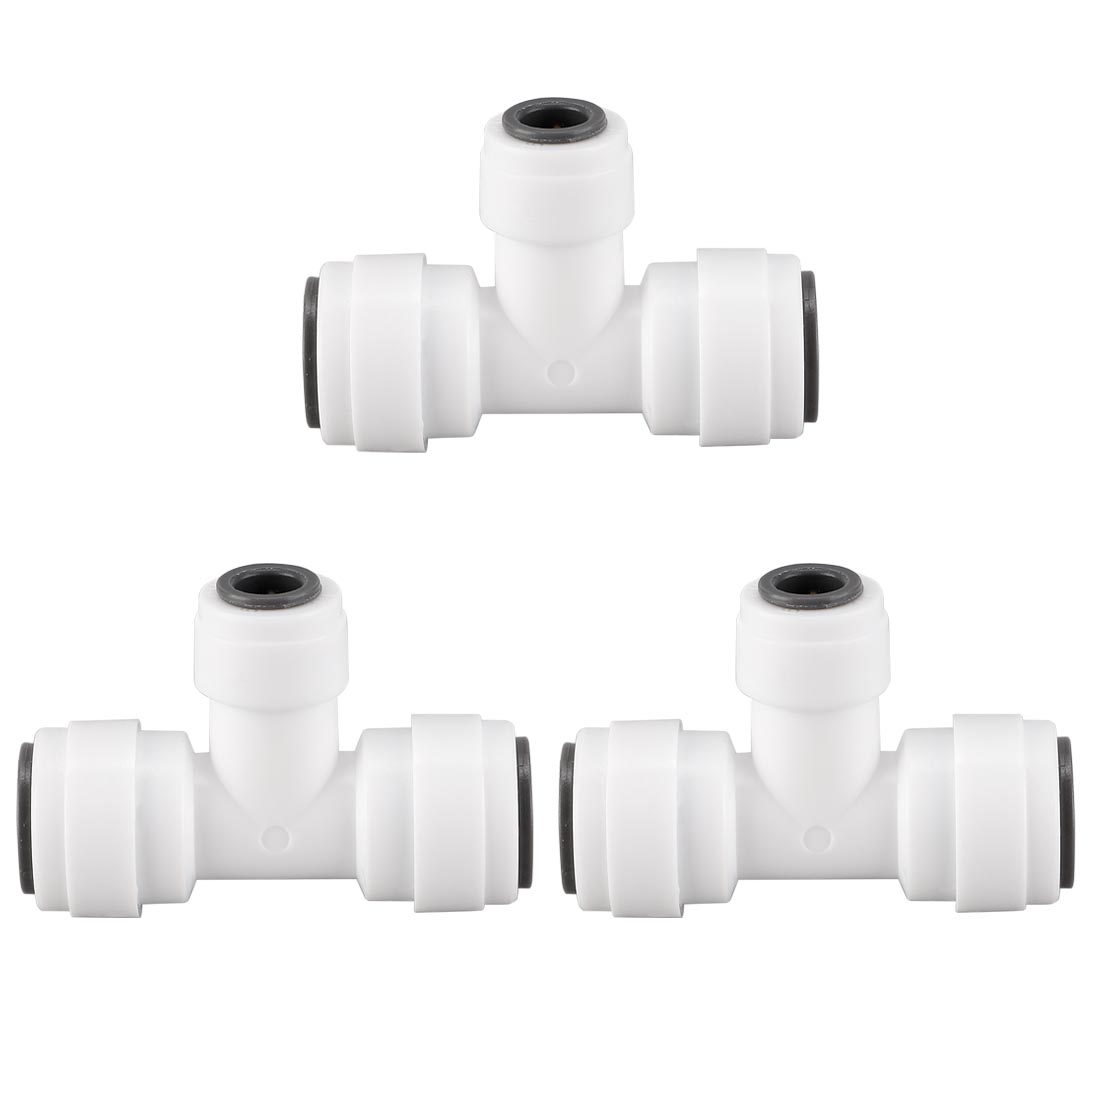 1/4 to 3/8 Inch OD T-type Quick Connect Water Tube Fittings RO Fittings 3pcs